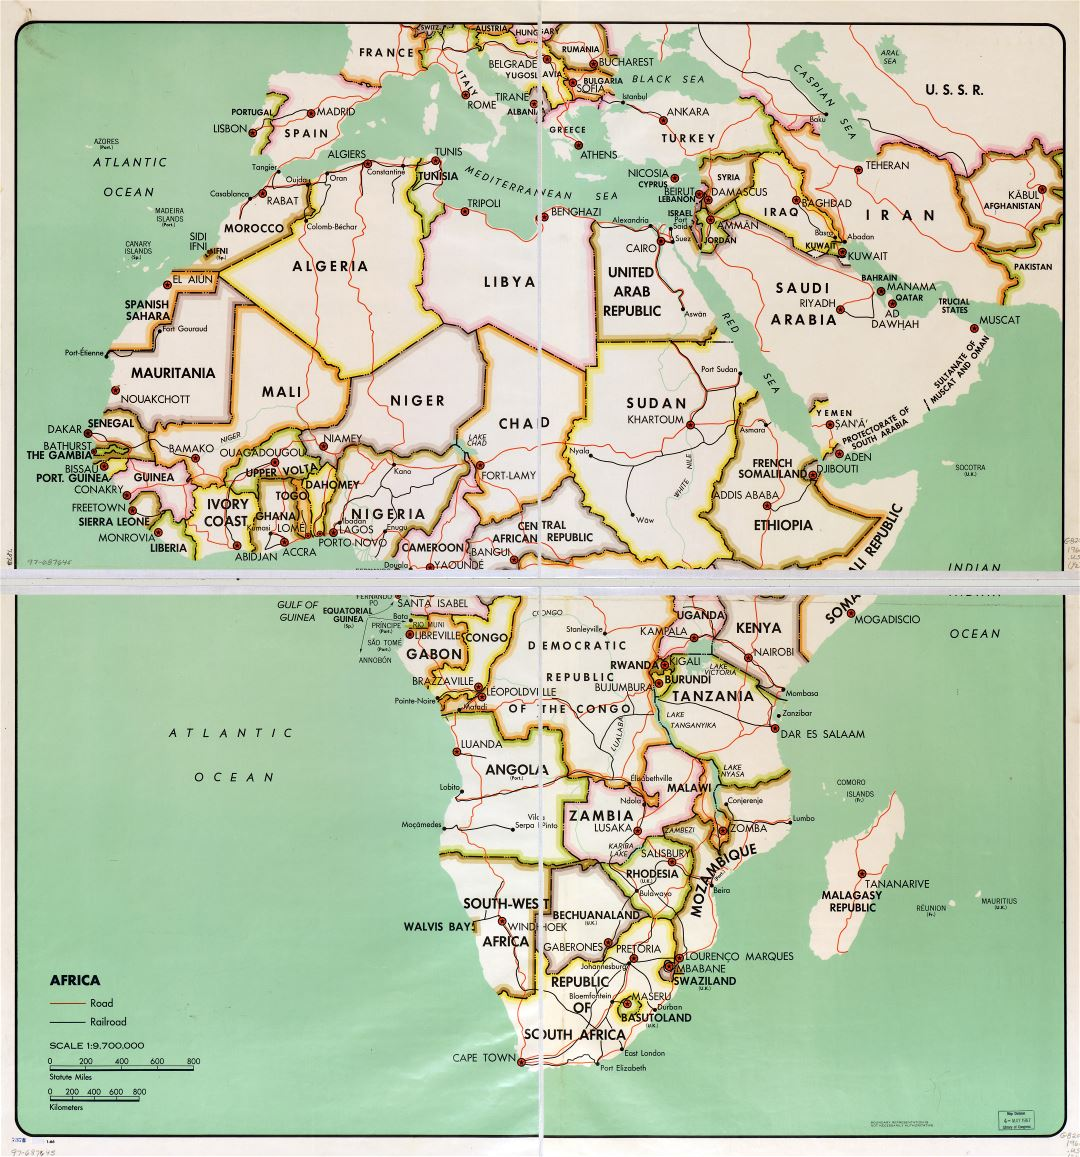 In high resolution detail political map of Africa with the marks of capital cities, large cities, major roads, railroads and names of countries - 1966